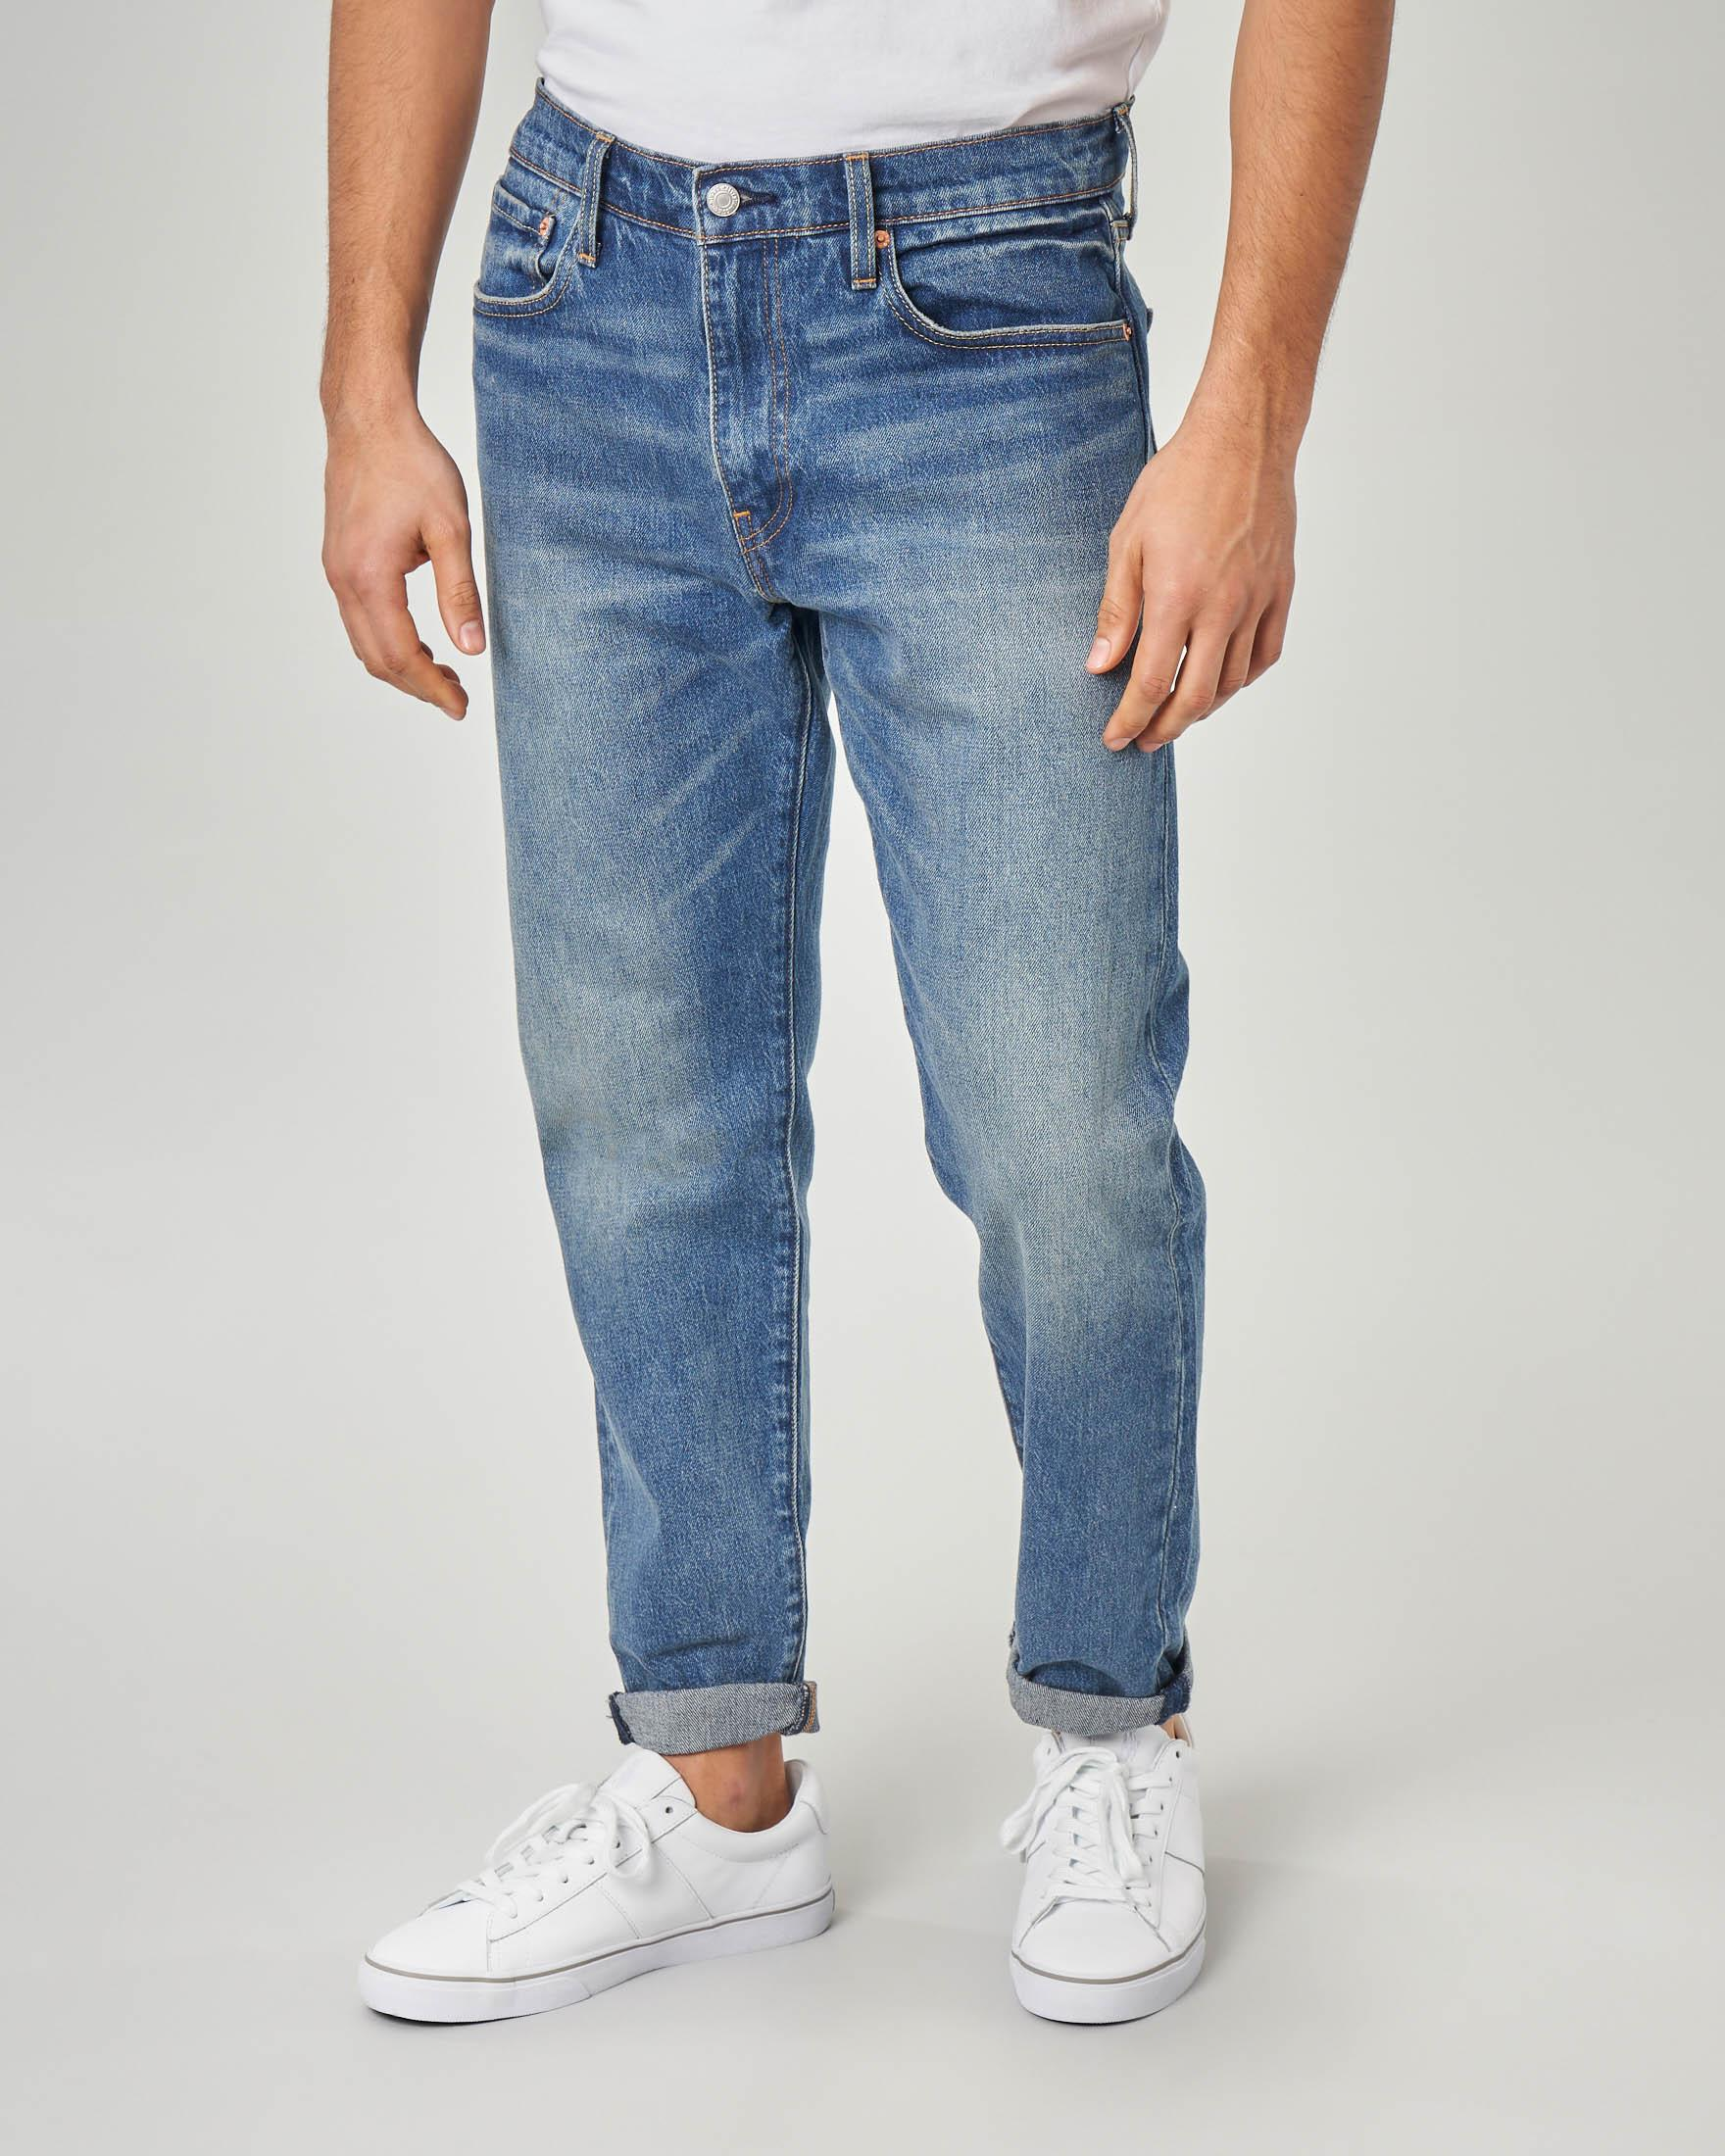 Jeans Hi-Ball tapered lavaggio stone wash